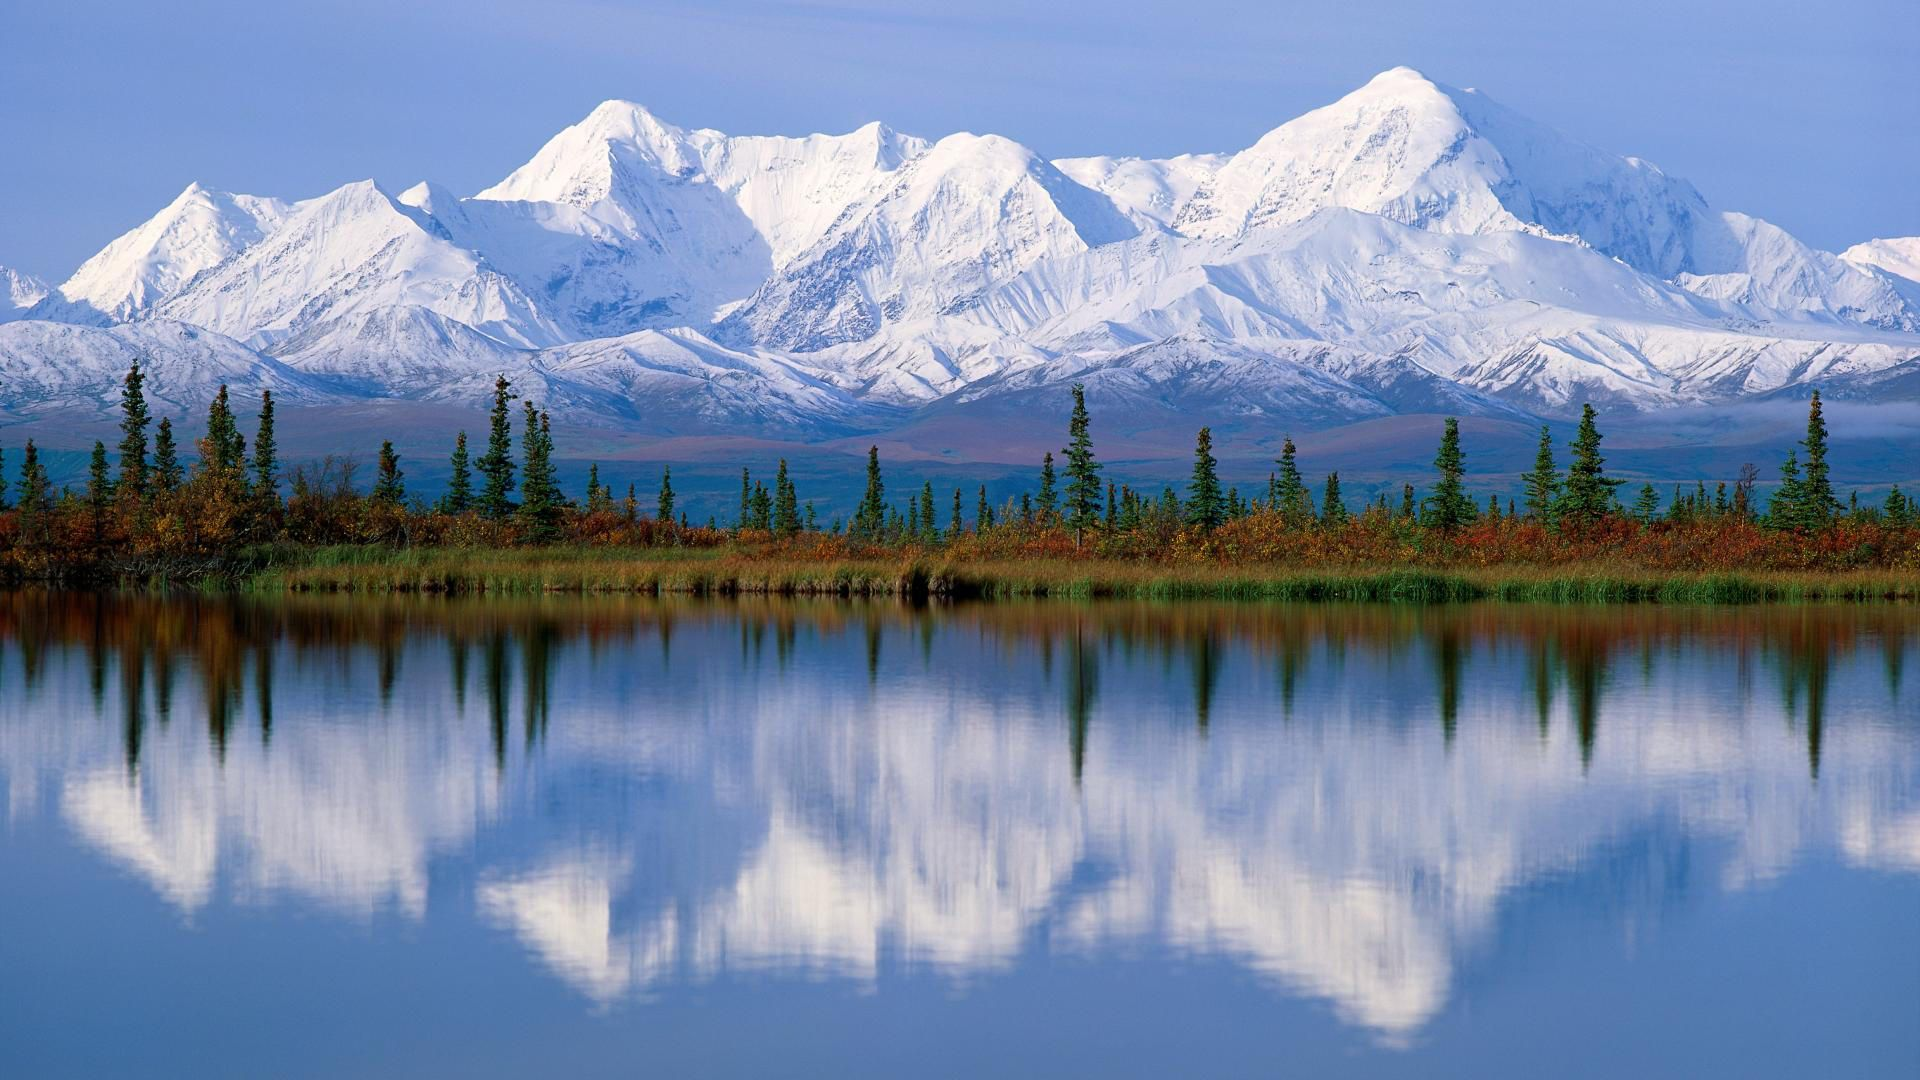 Visit Alaska and it's many wonders!